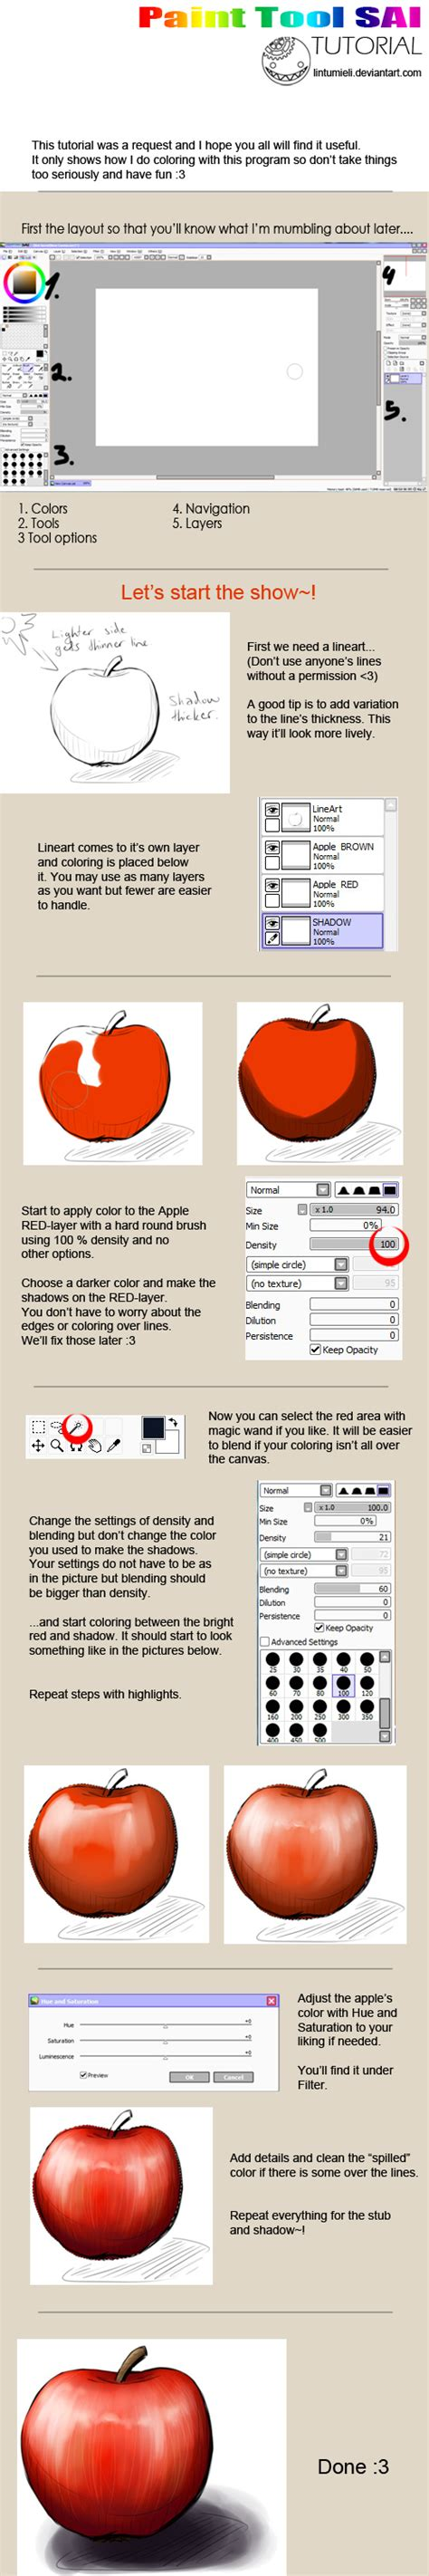 paint tool sai draw tutorial paint tool sai coloring tutorial by lintumieli on deviantart